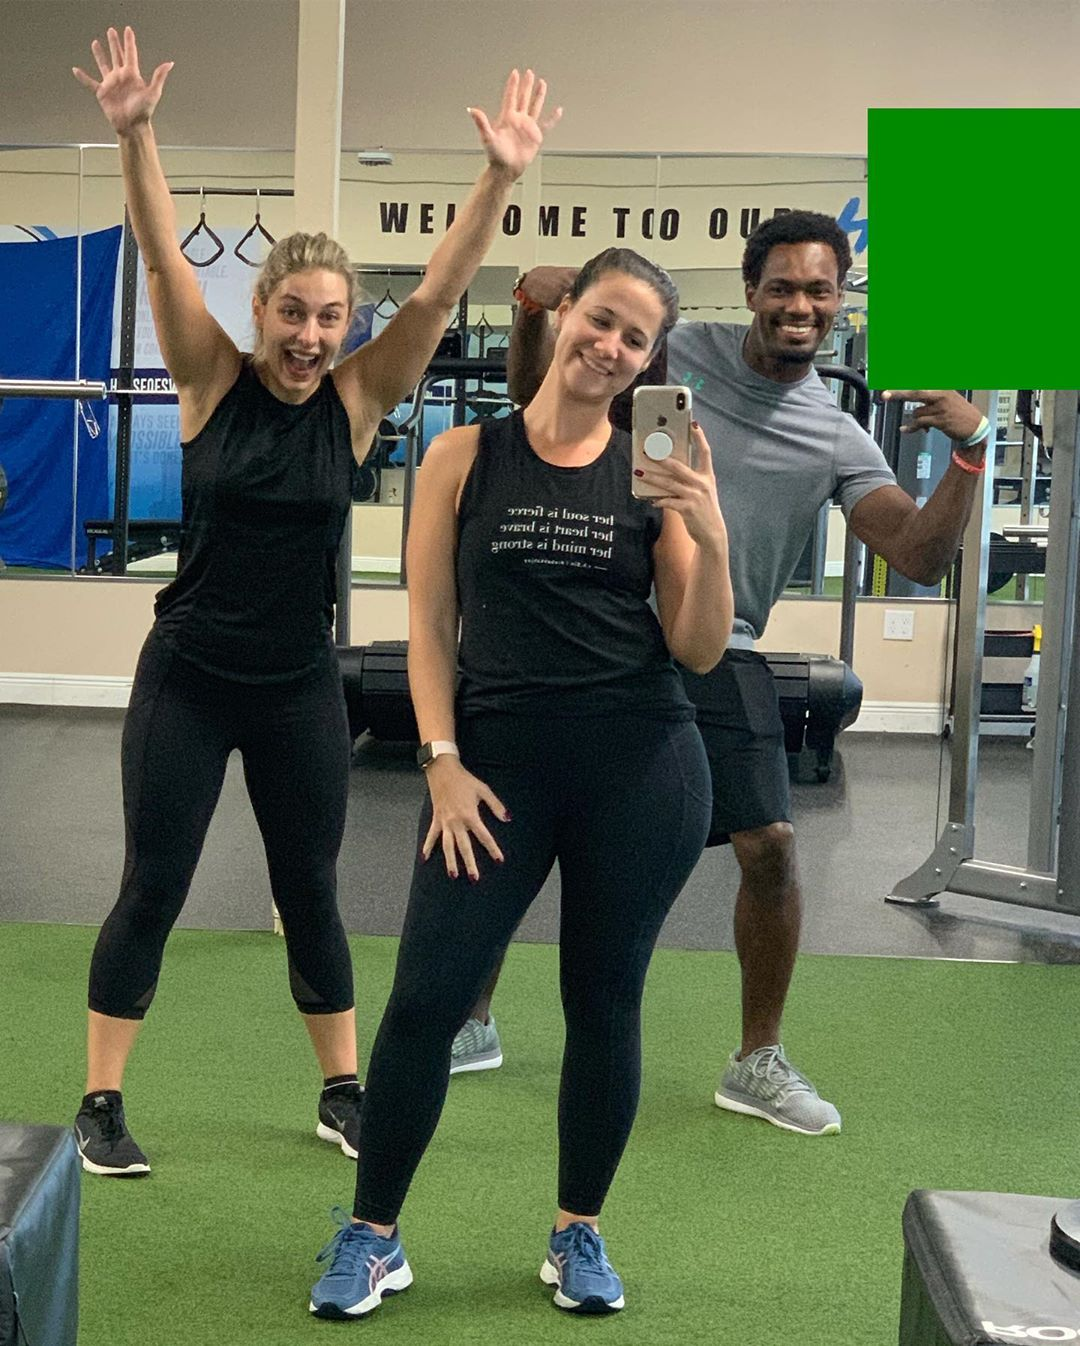 Roberta and her gym buddies at House of Sweat.